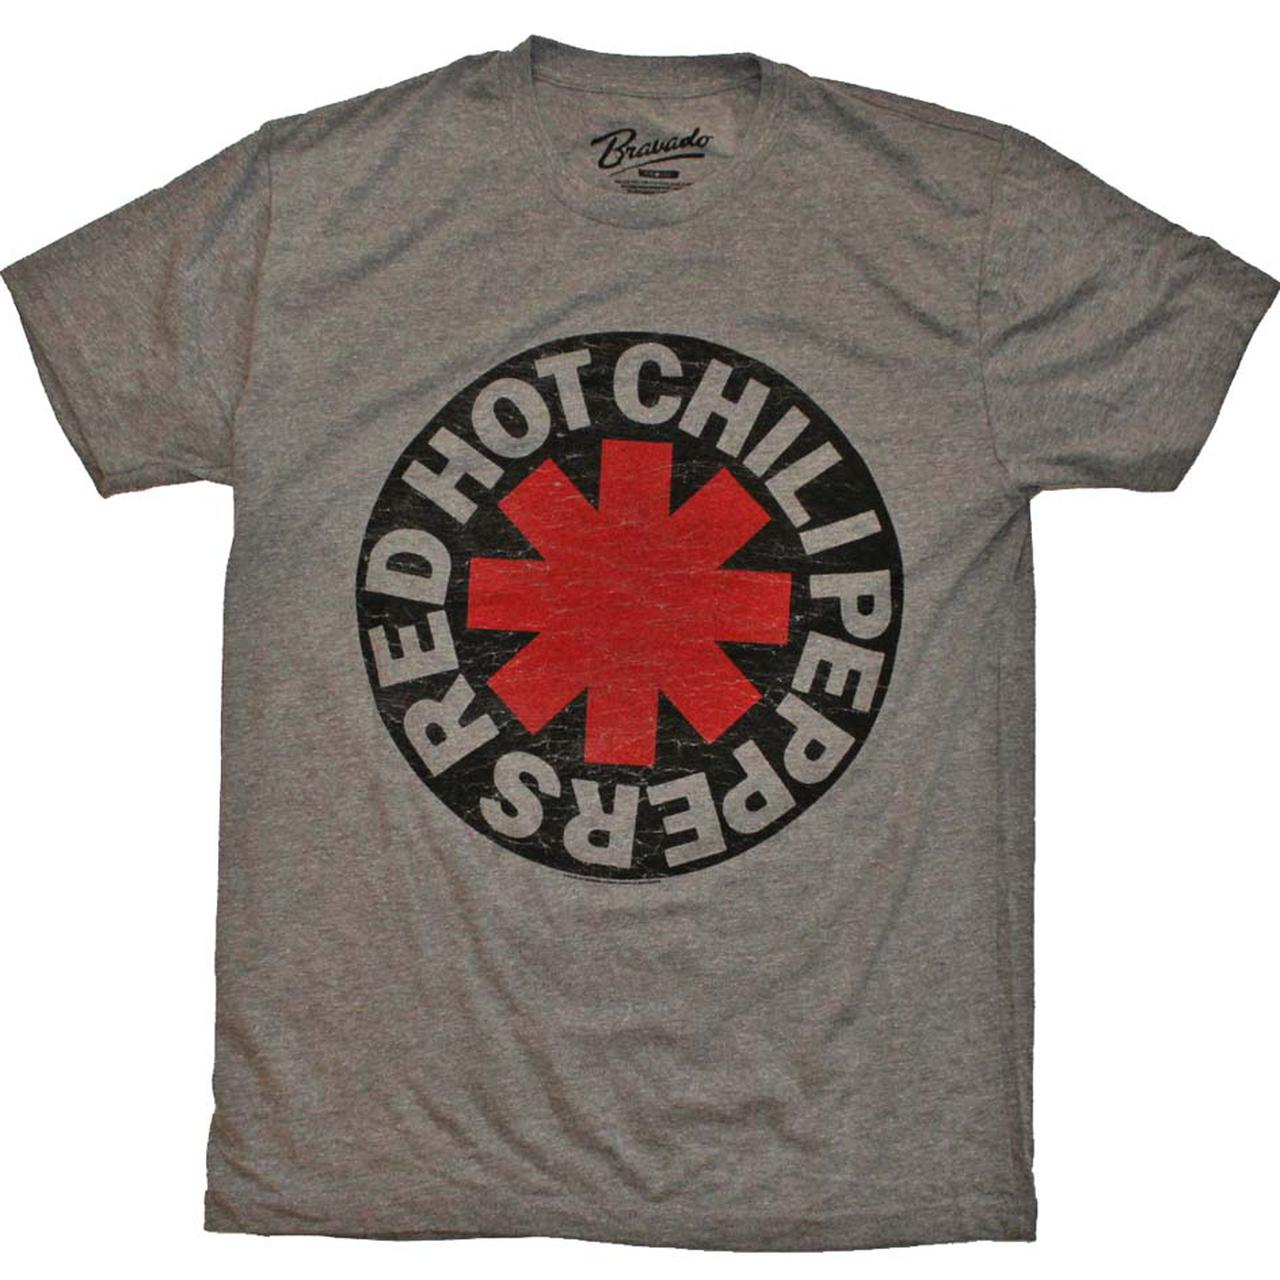 T shirt black rebel motorcycle club - Red Hot Chili Peppers T Shirt